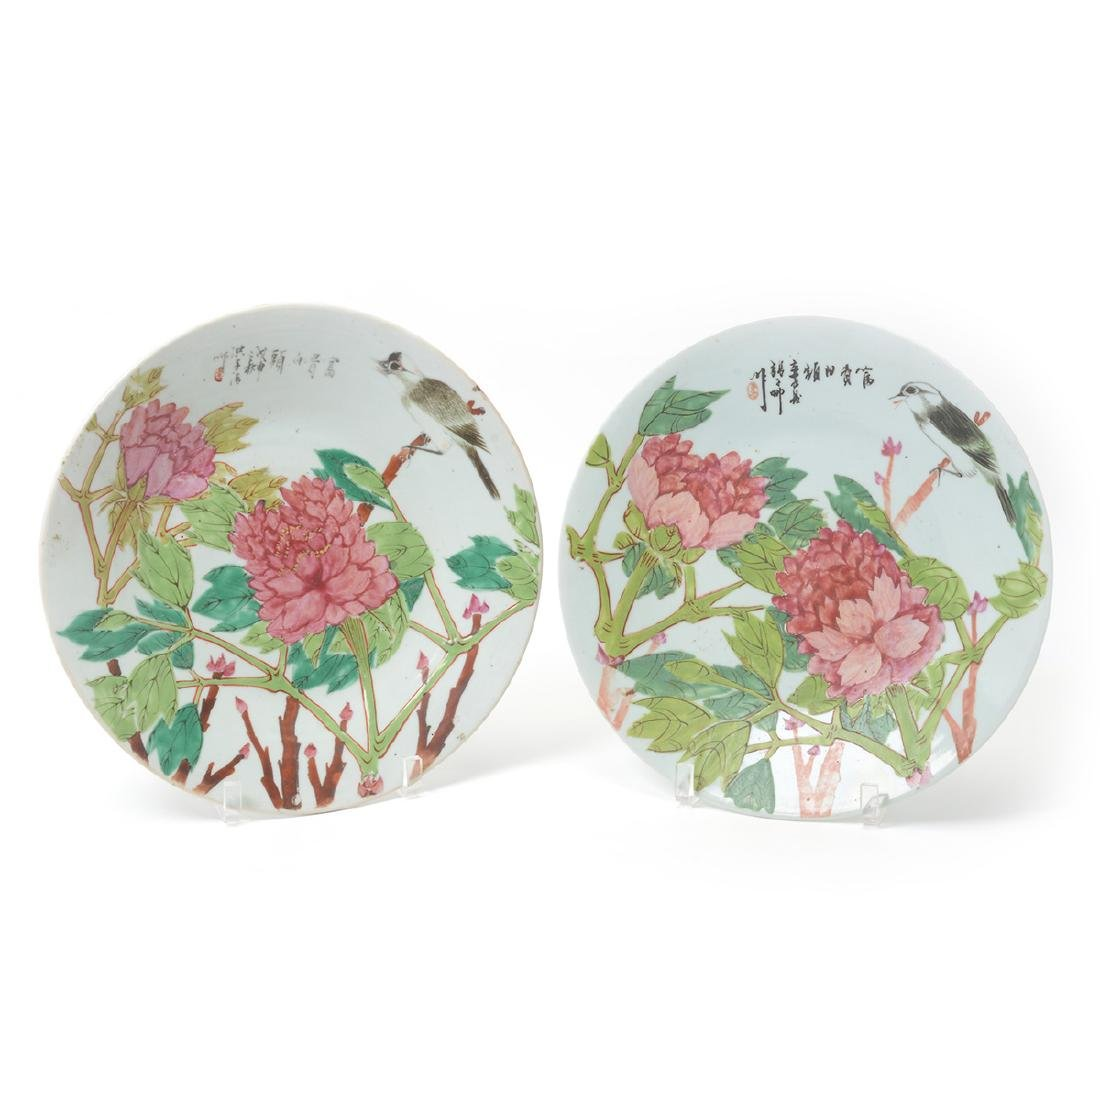 Pair of Famille Rose Plates, Early 20th C